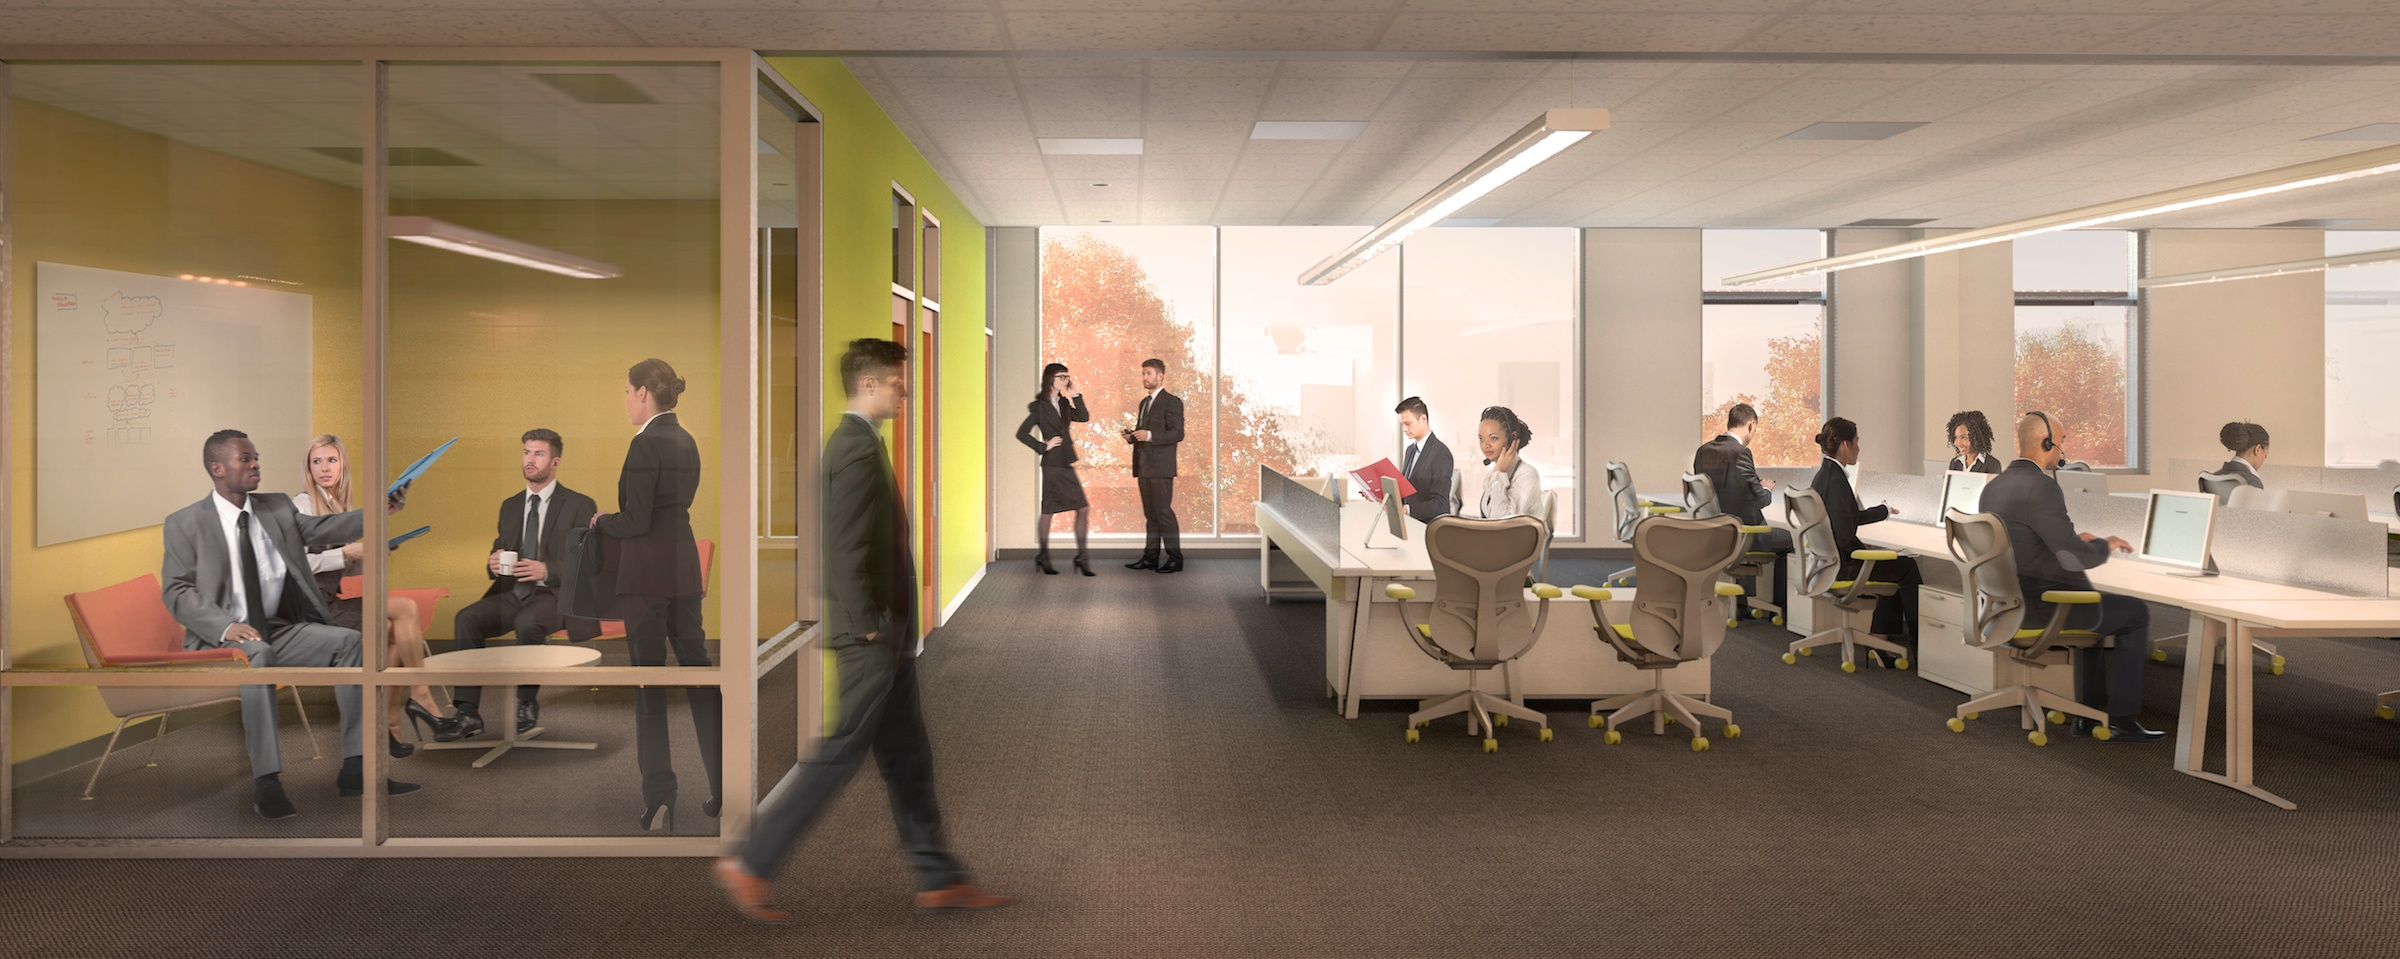 1208_63_NWCU_rendering_office2.jpg